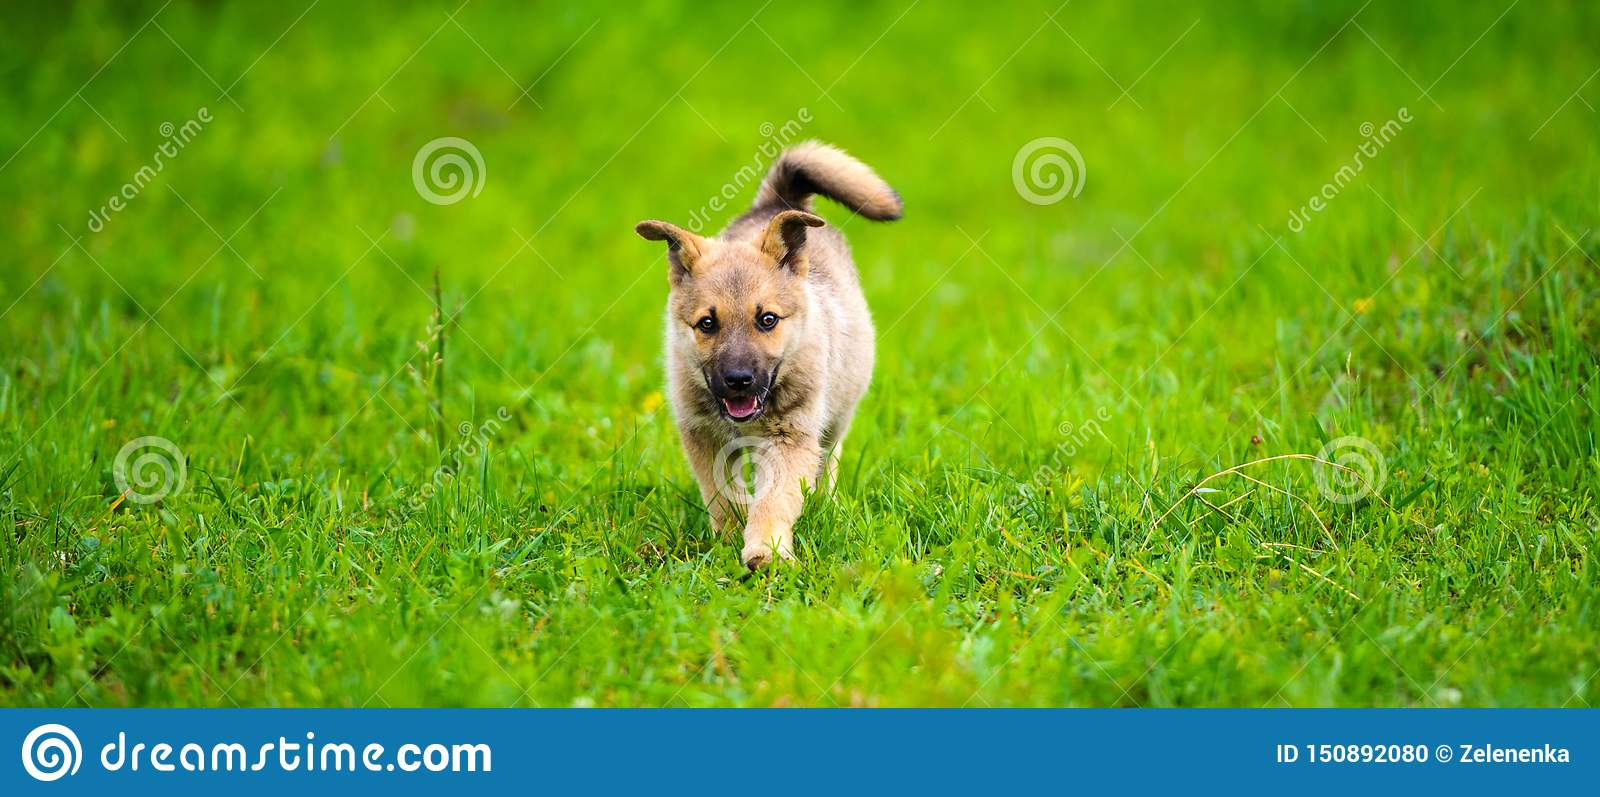 little puppy is running happily with floppy ears trough a garden with green grass